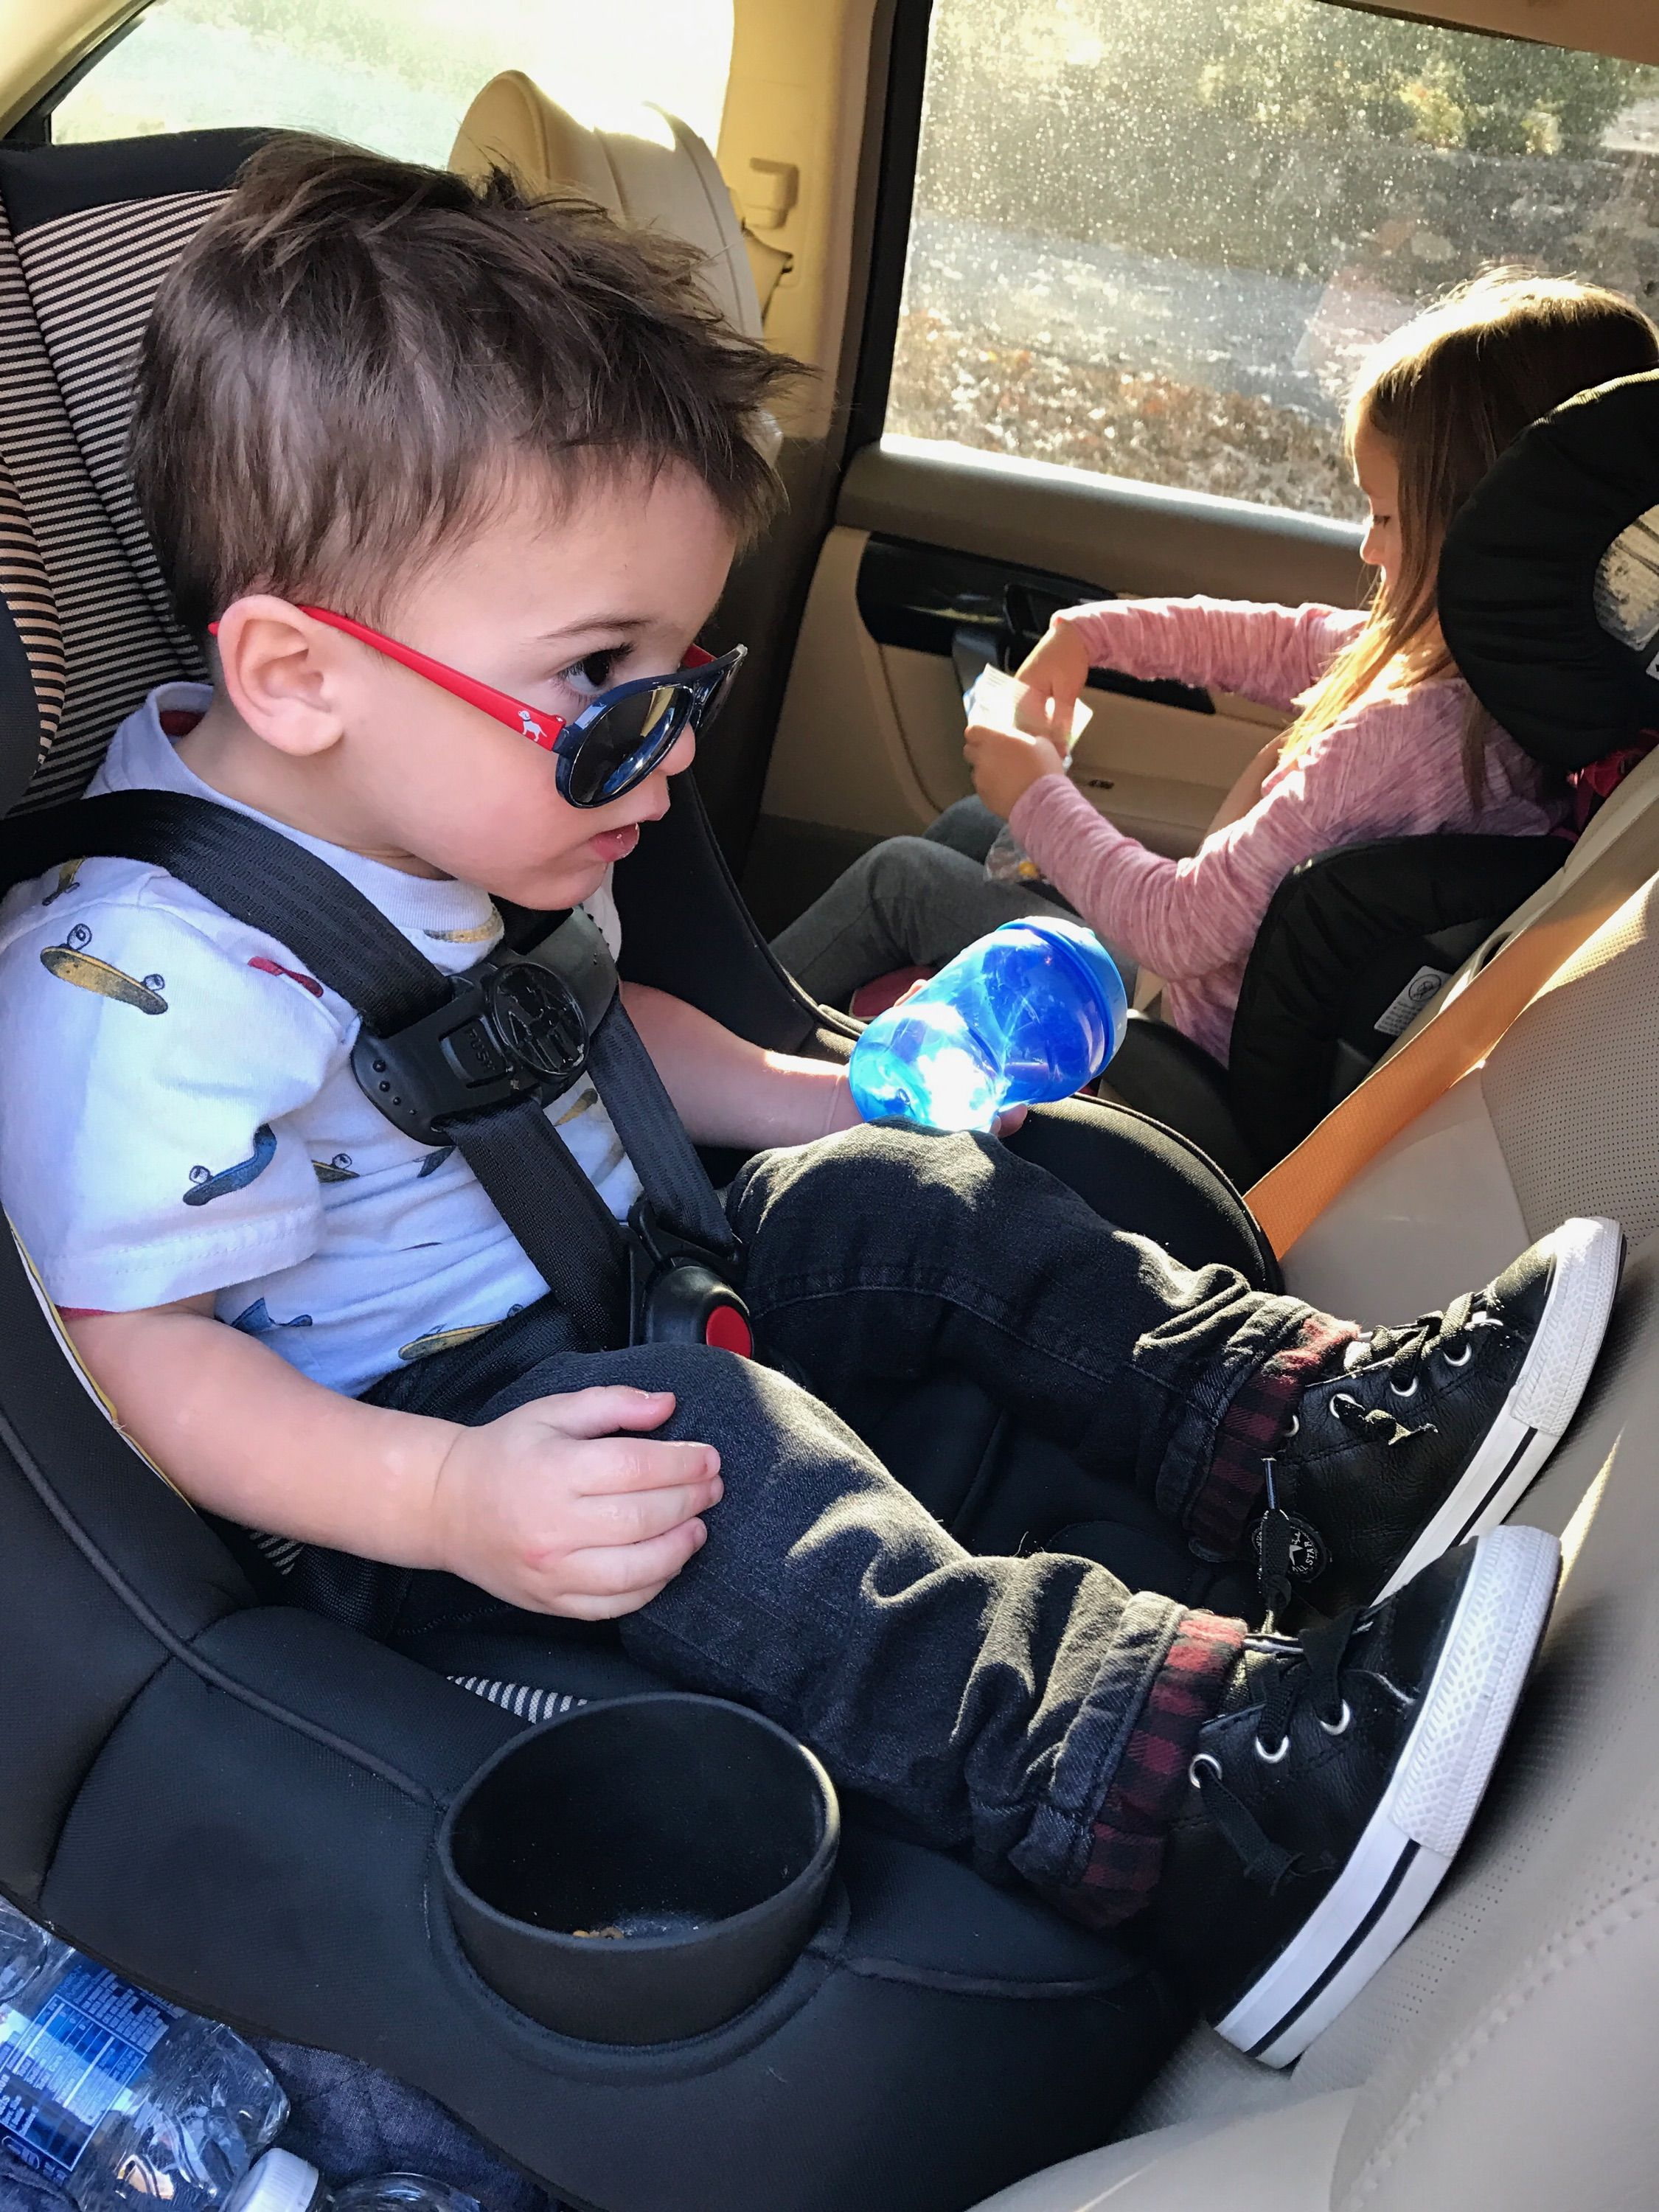 Owen, catching a look at himself in his car seat mirror...pretty cool little dude!